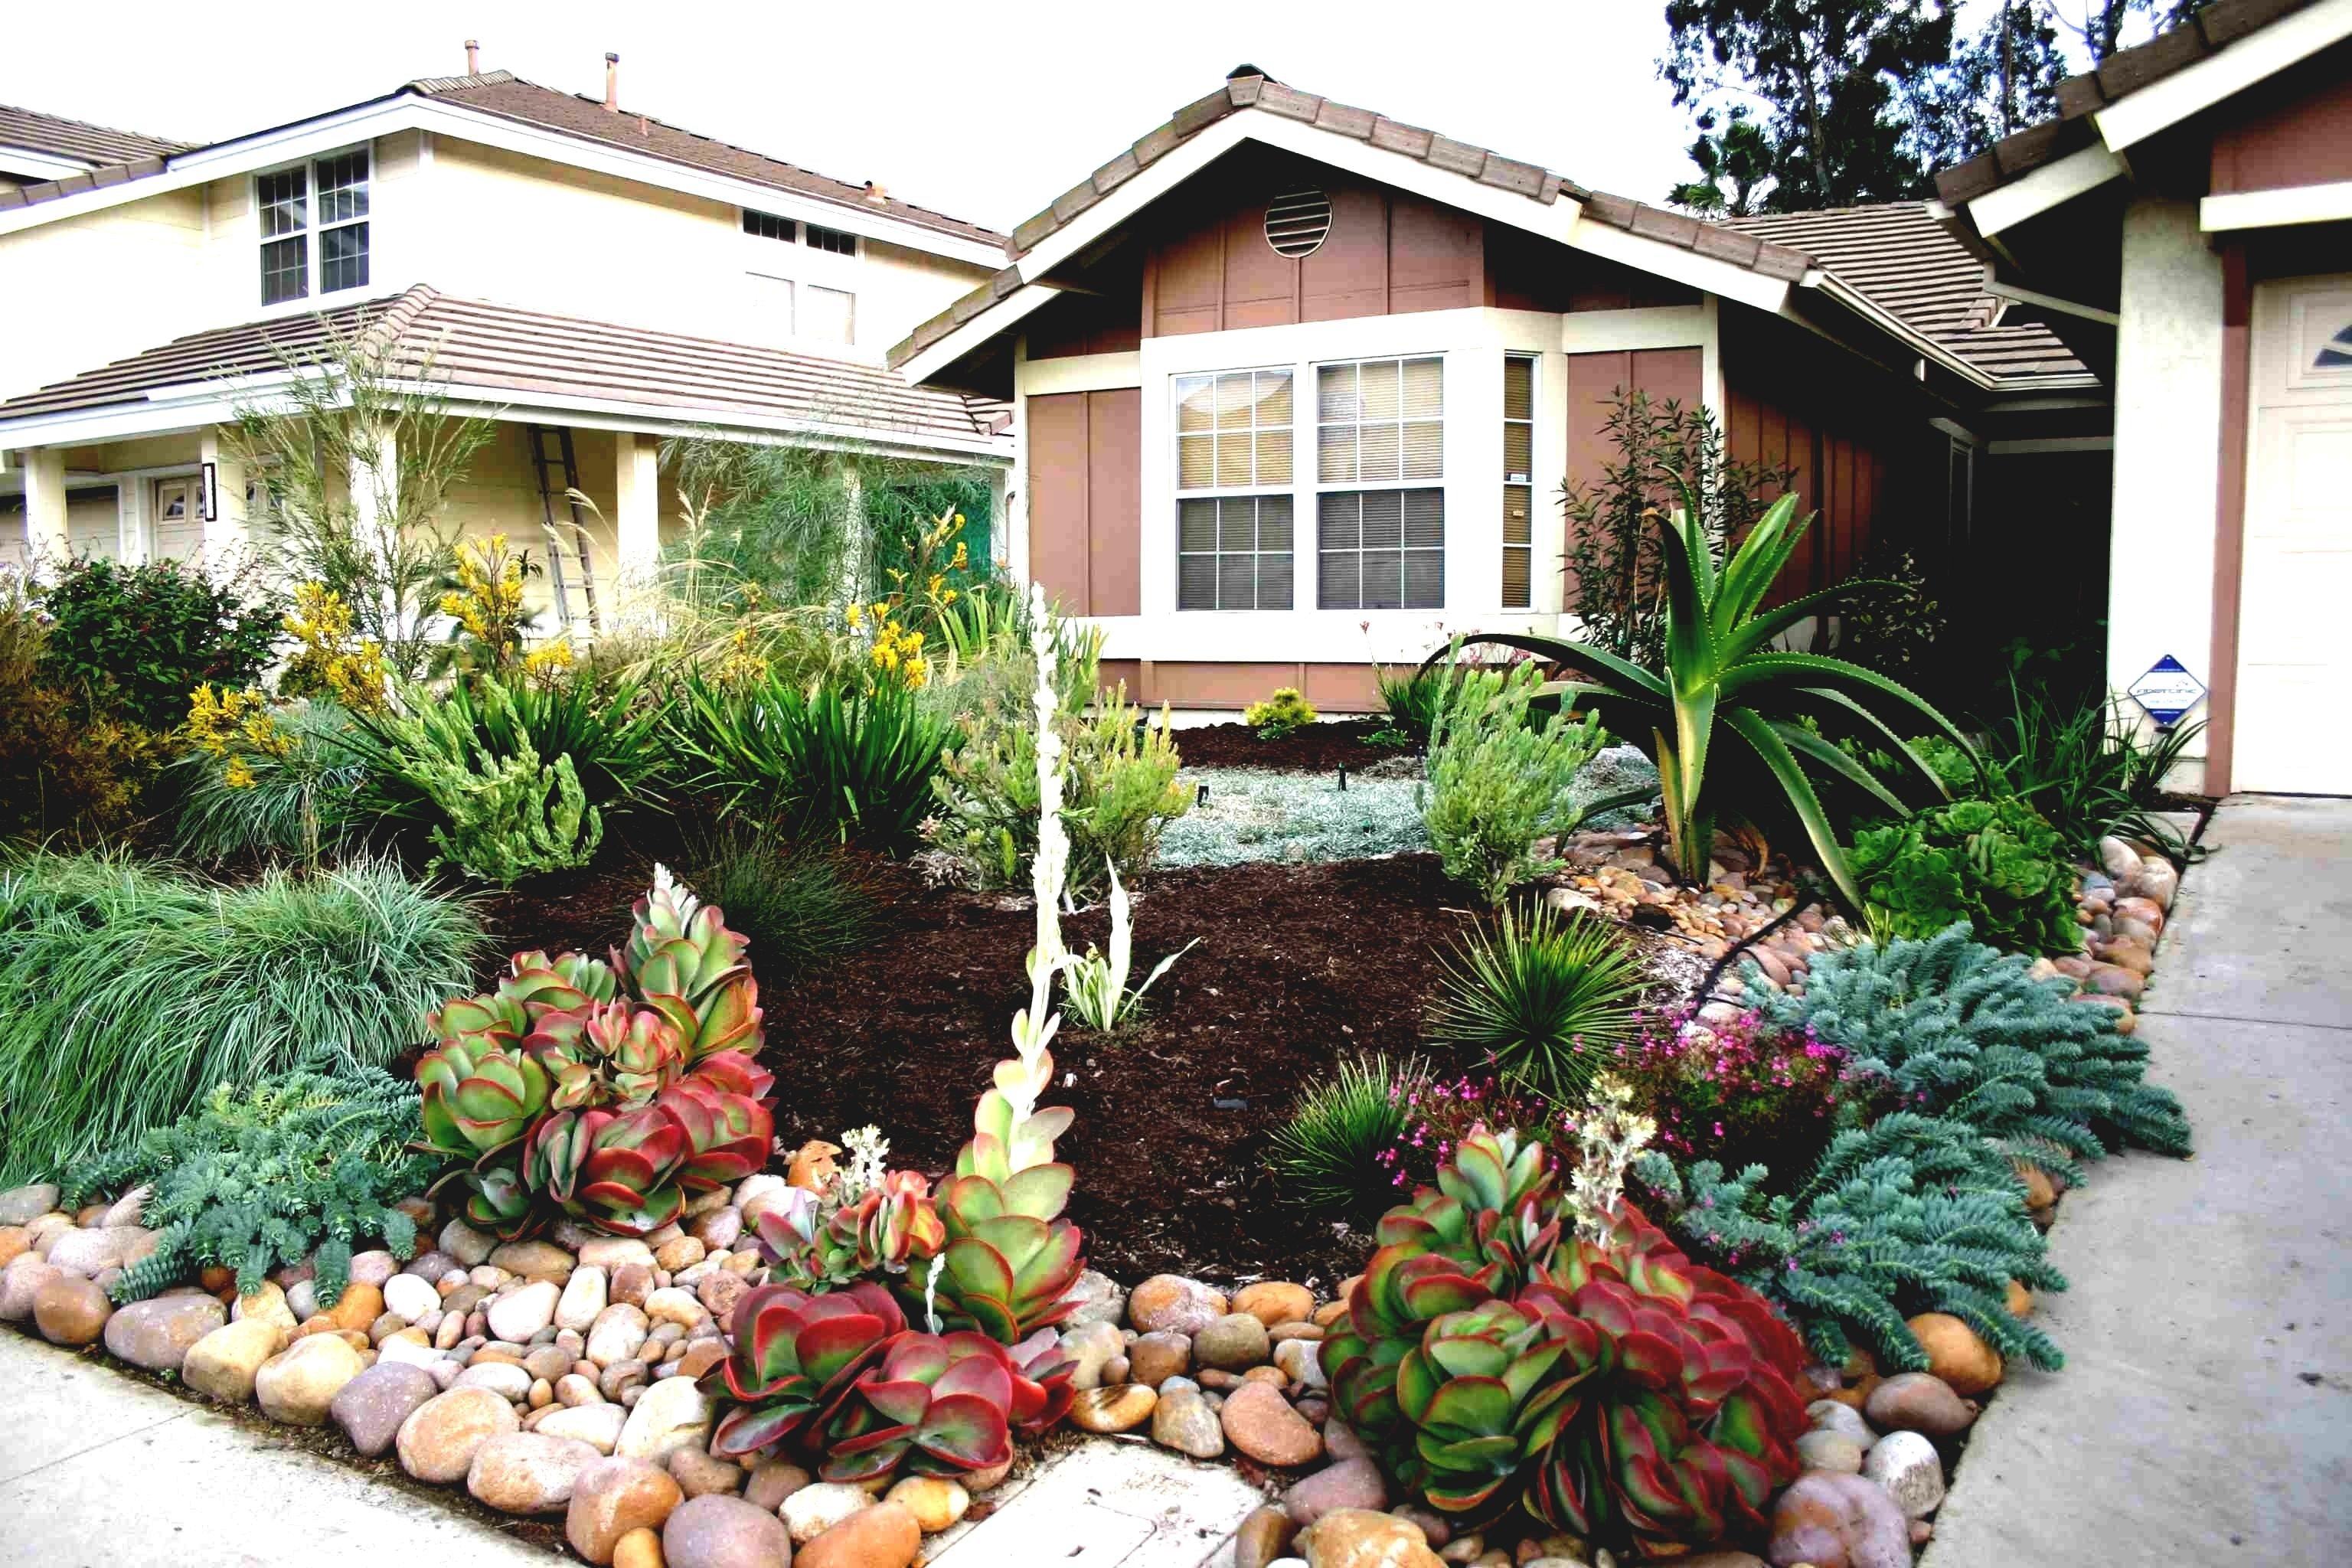 10 Stylish Ideas For Front Yard Landscaping Without Grass marvellous ideas for front yard landscaping without grass pics 2021